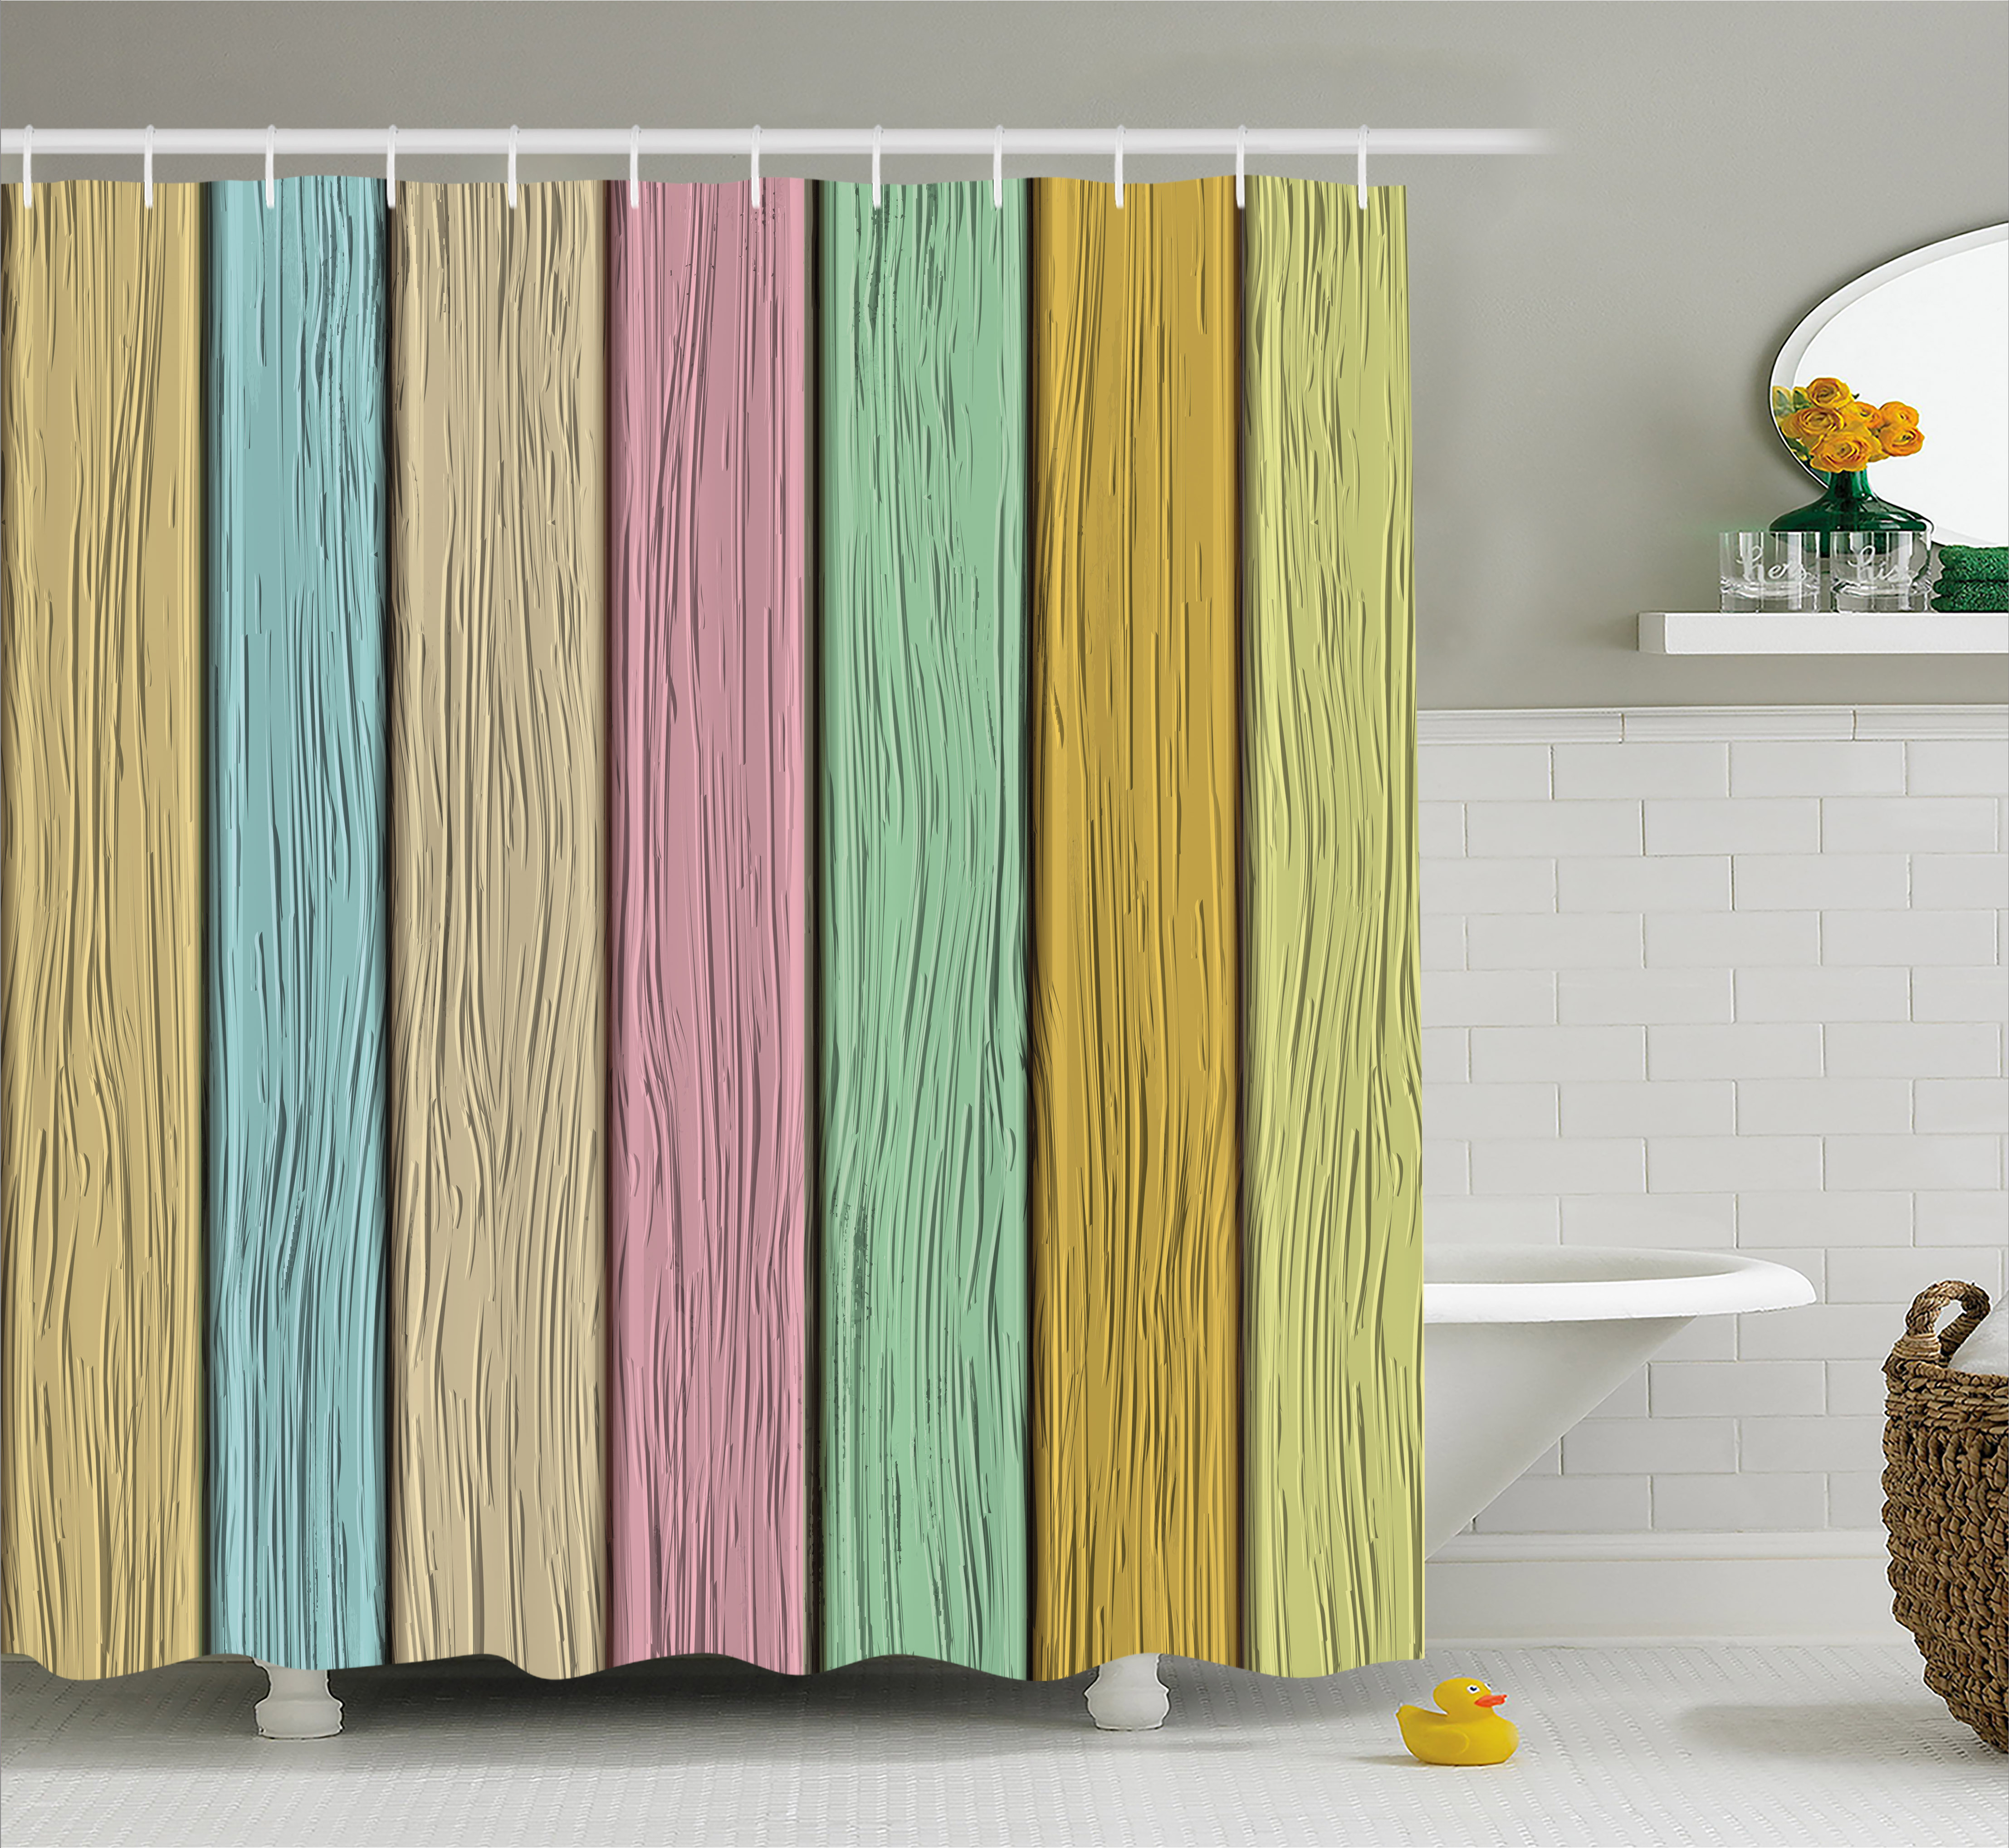 Pastel Shower Curtain, Colorful Old Wooden Planks Timber Texture Rustic Farmhouse Country Home Decor Print, Fabric Bathroom Set with Hooks, 69W X 70L Inches, Multicolor, by Ambesonne